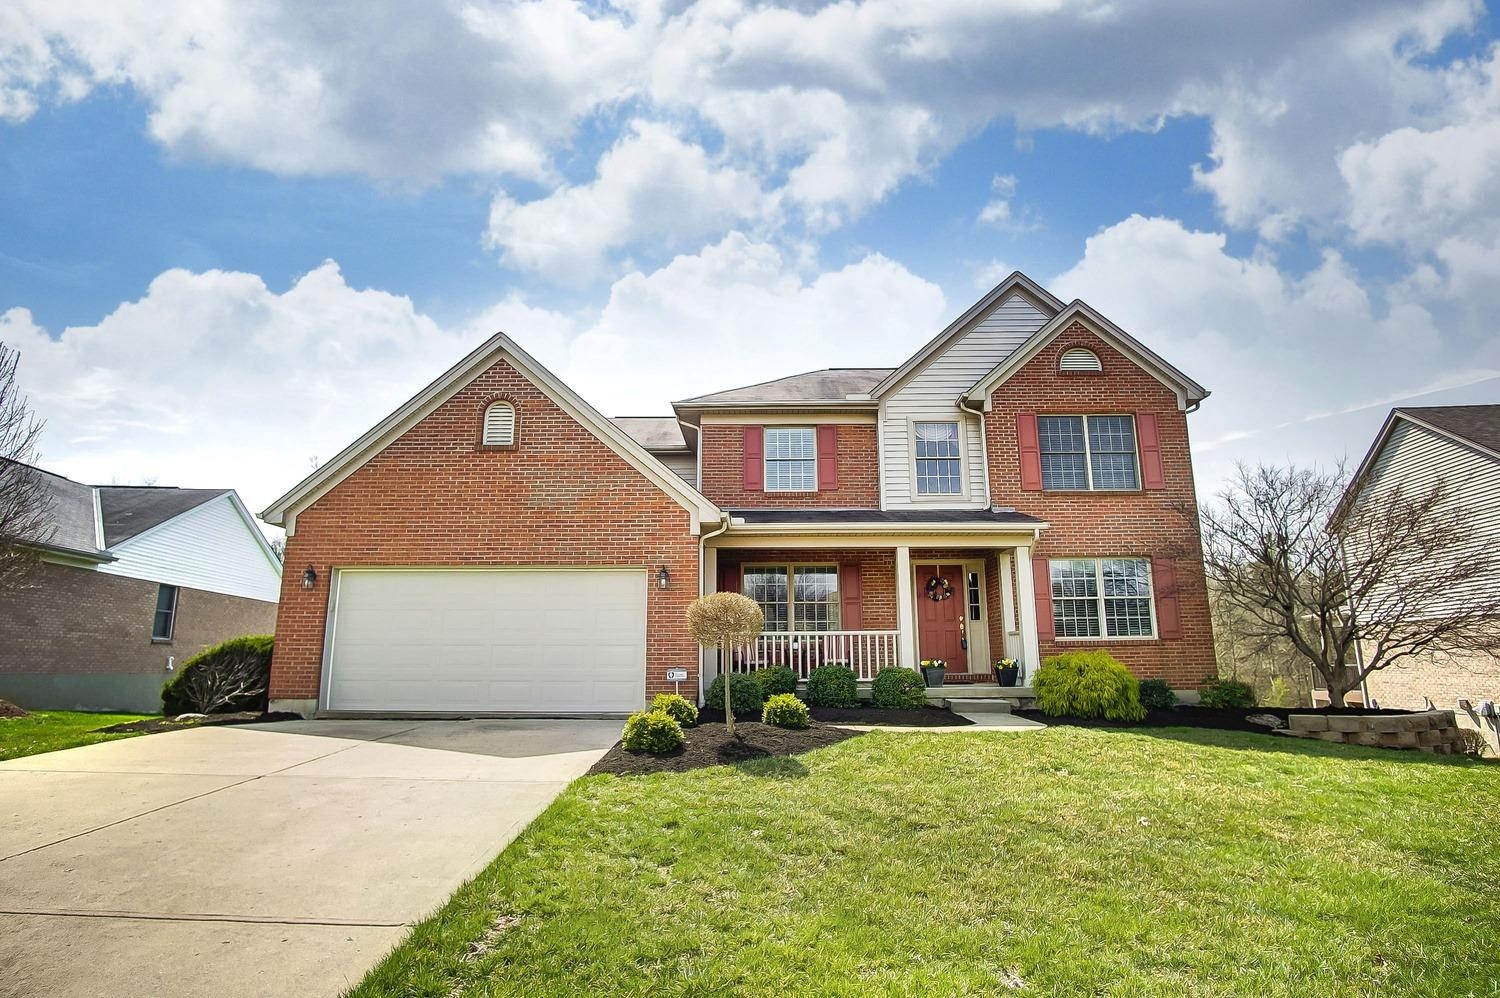 Property for sale at 6850 Baytowne Drive, Colerain Twp,  Ohio 45247